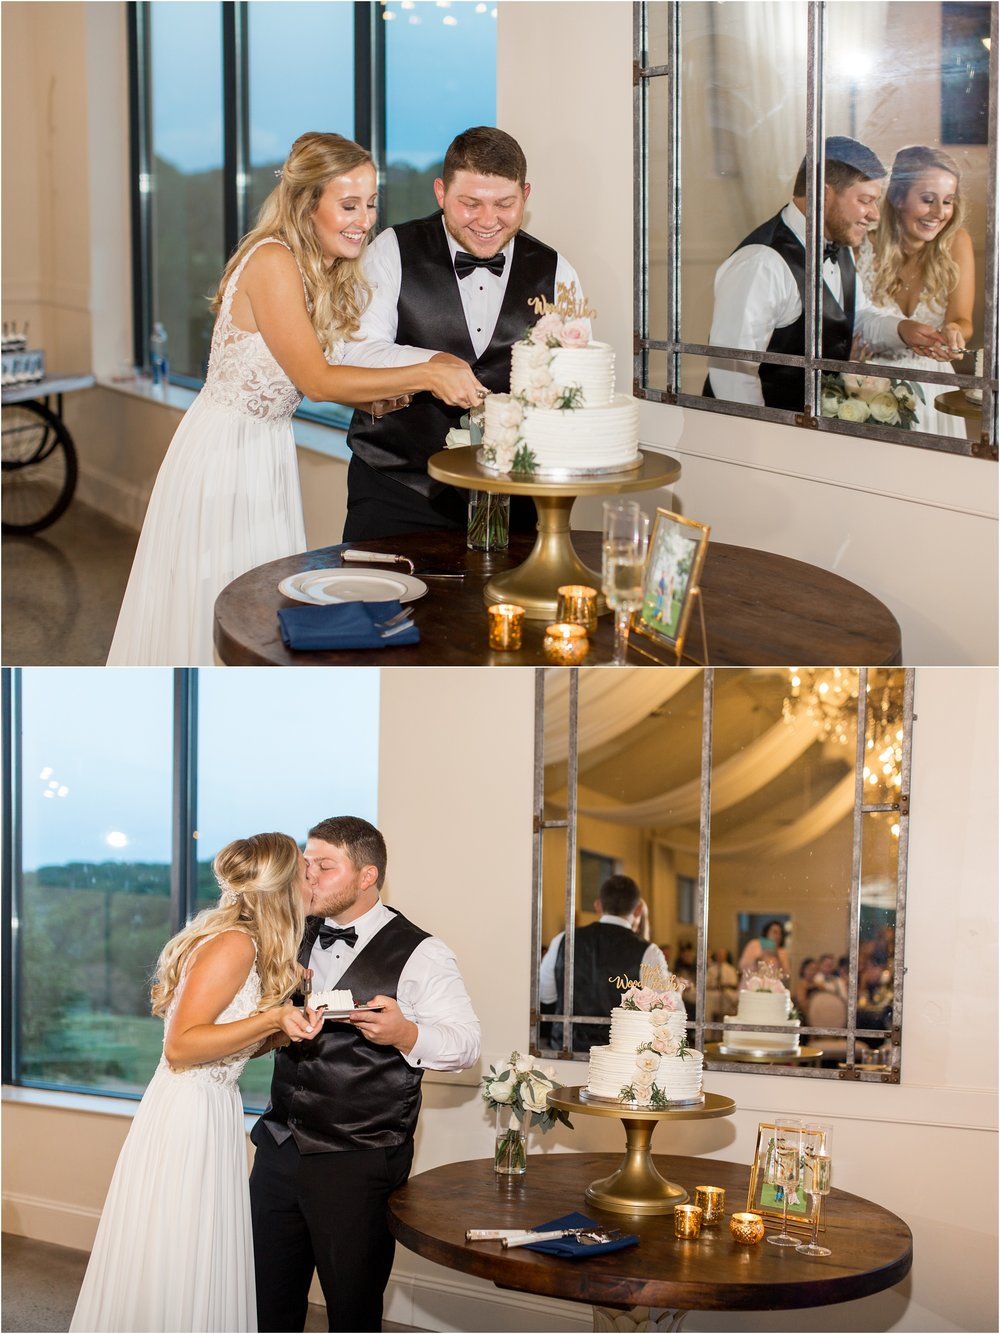 Savannah Eve Photography- Jurek-Woodworth Wedding- Sneak Peek-86.jpg